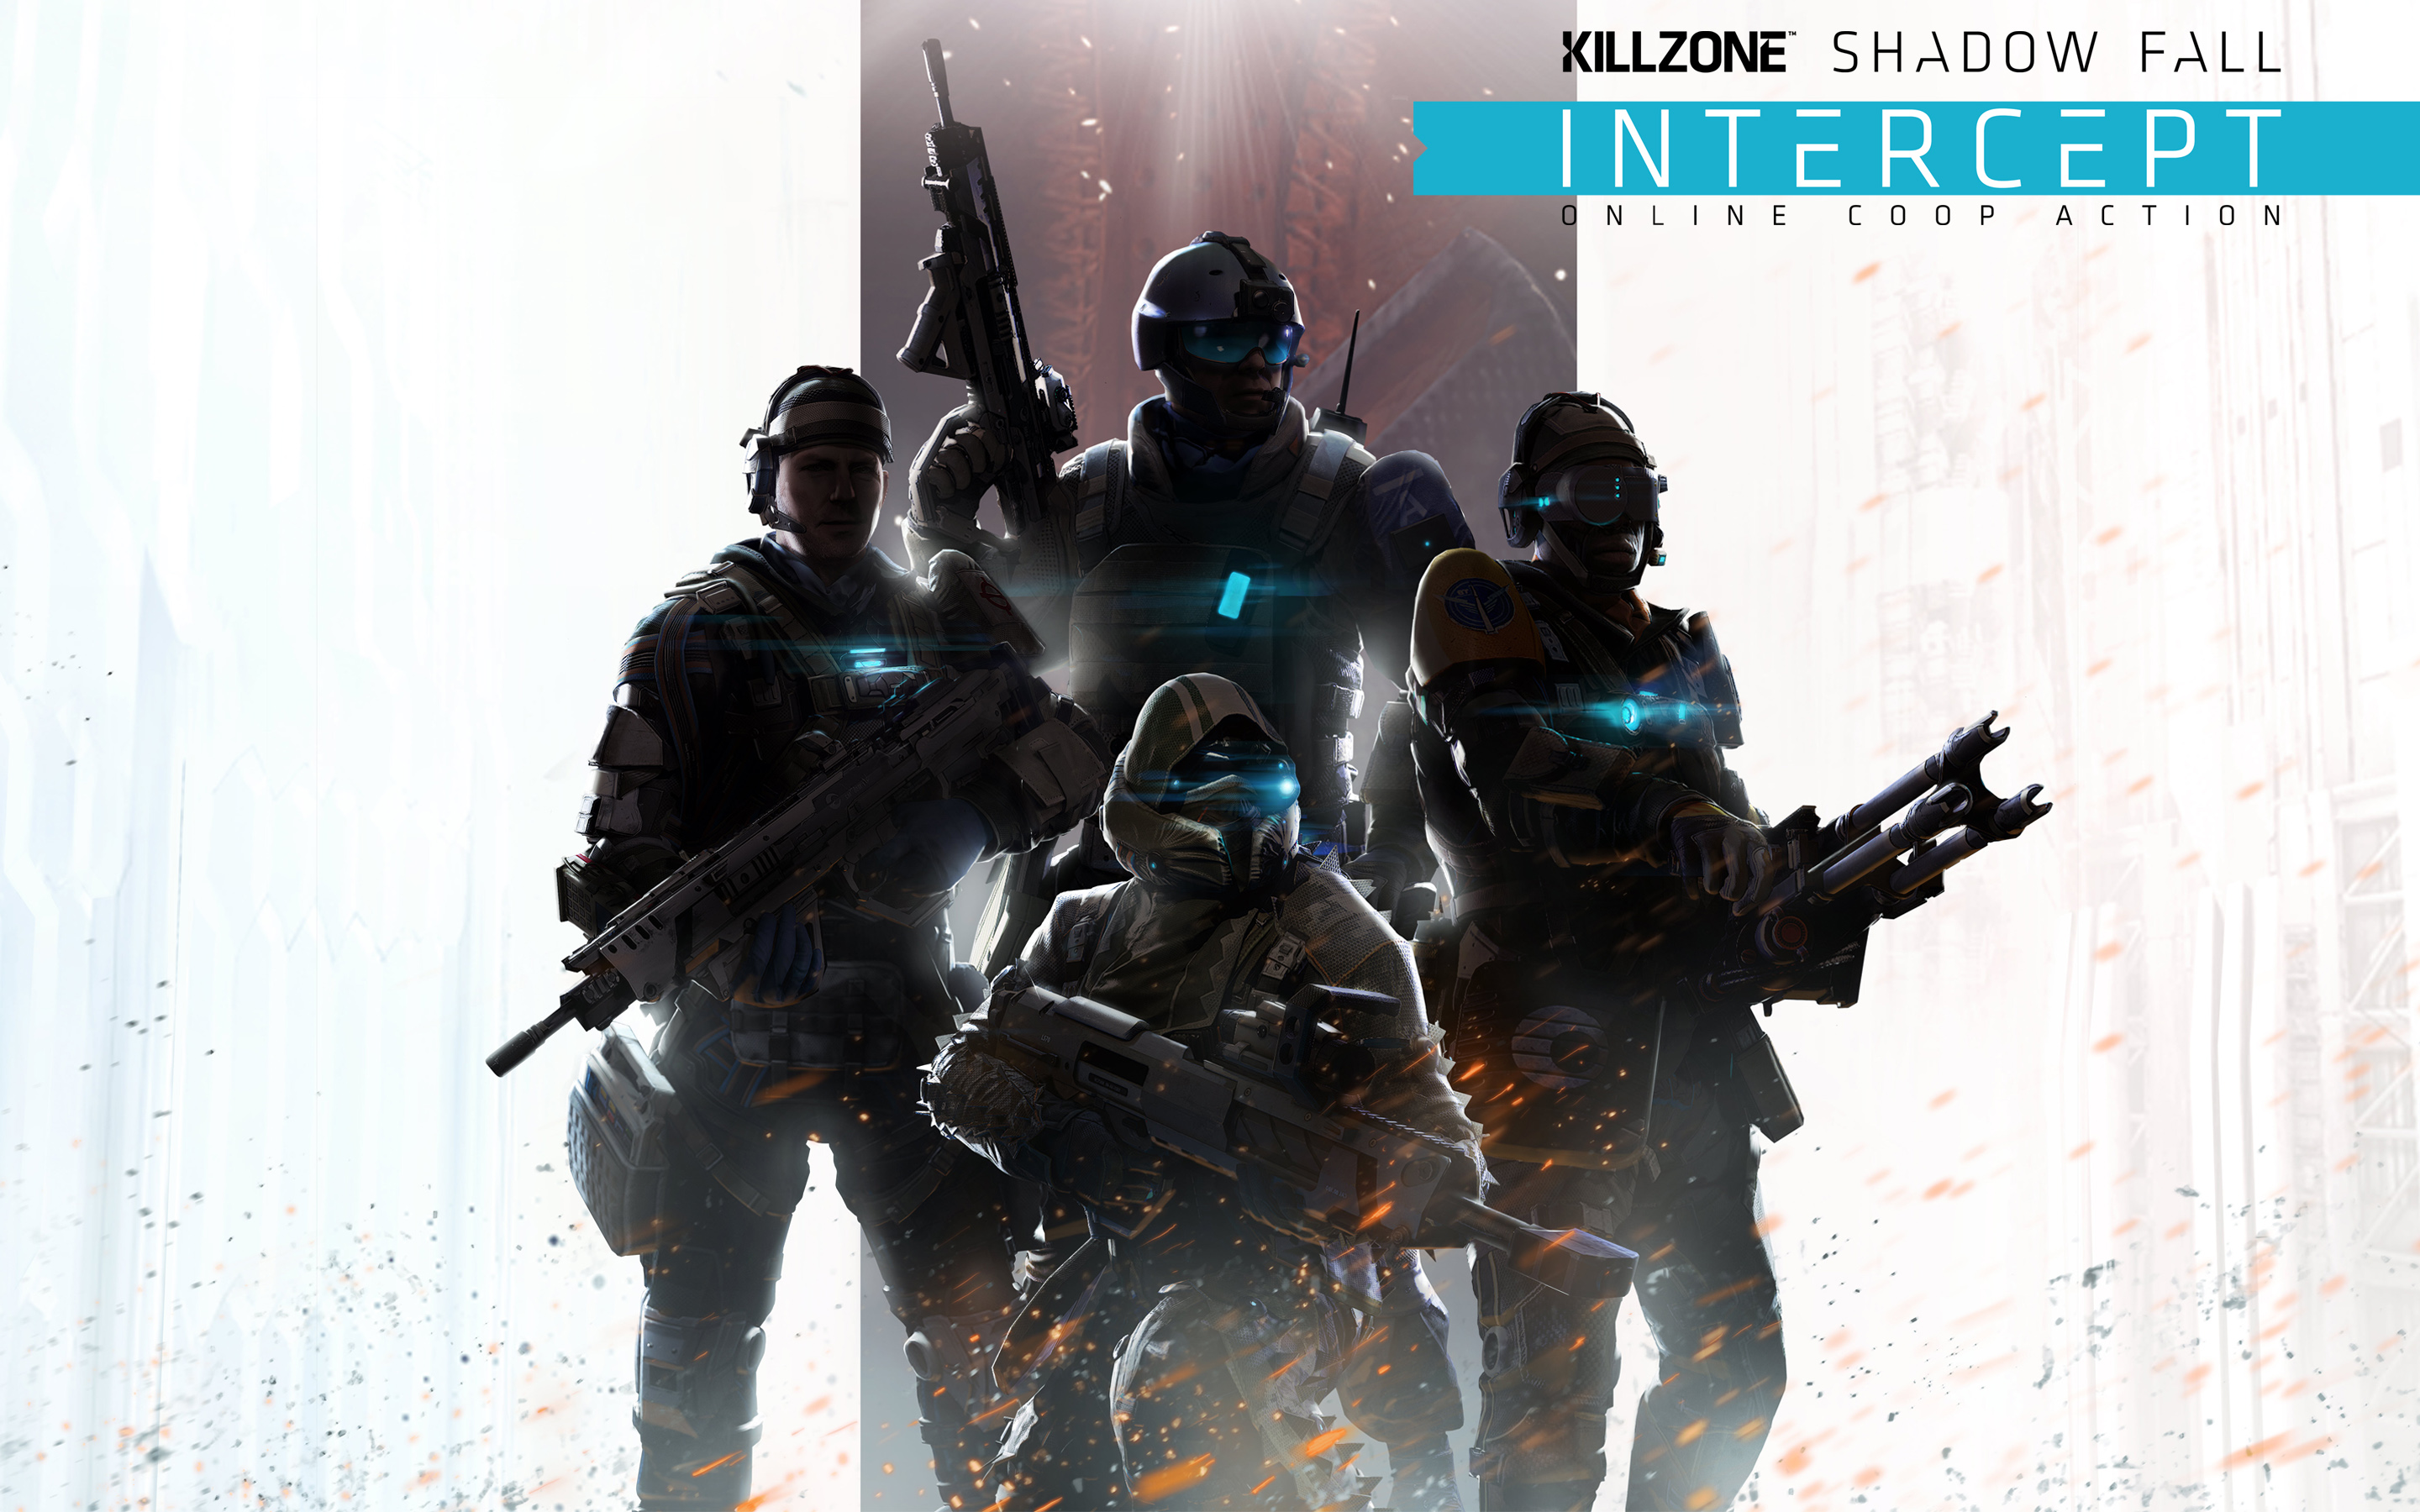 Killzone Shadow Fall Intercept Game 607.19 Kb